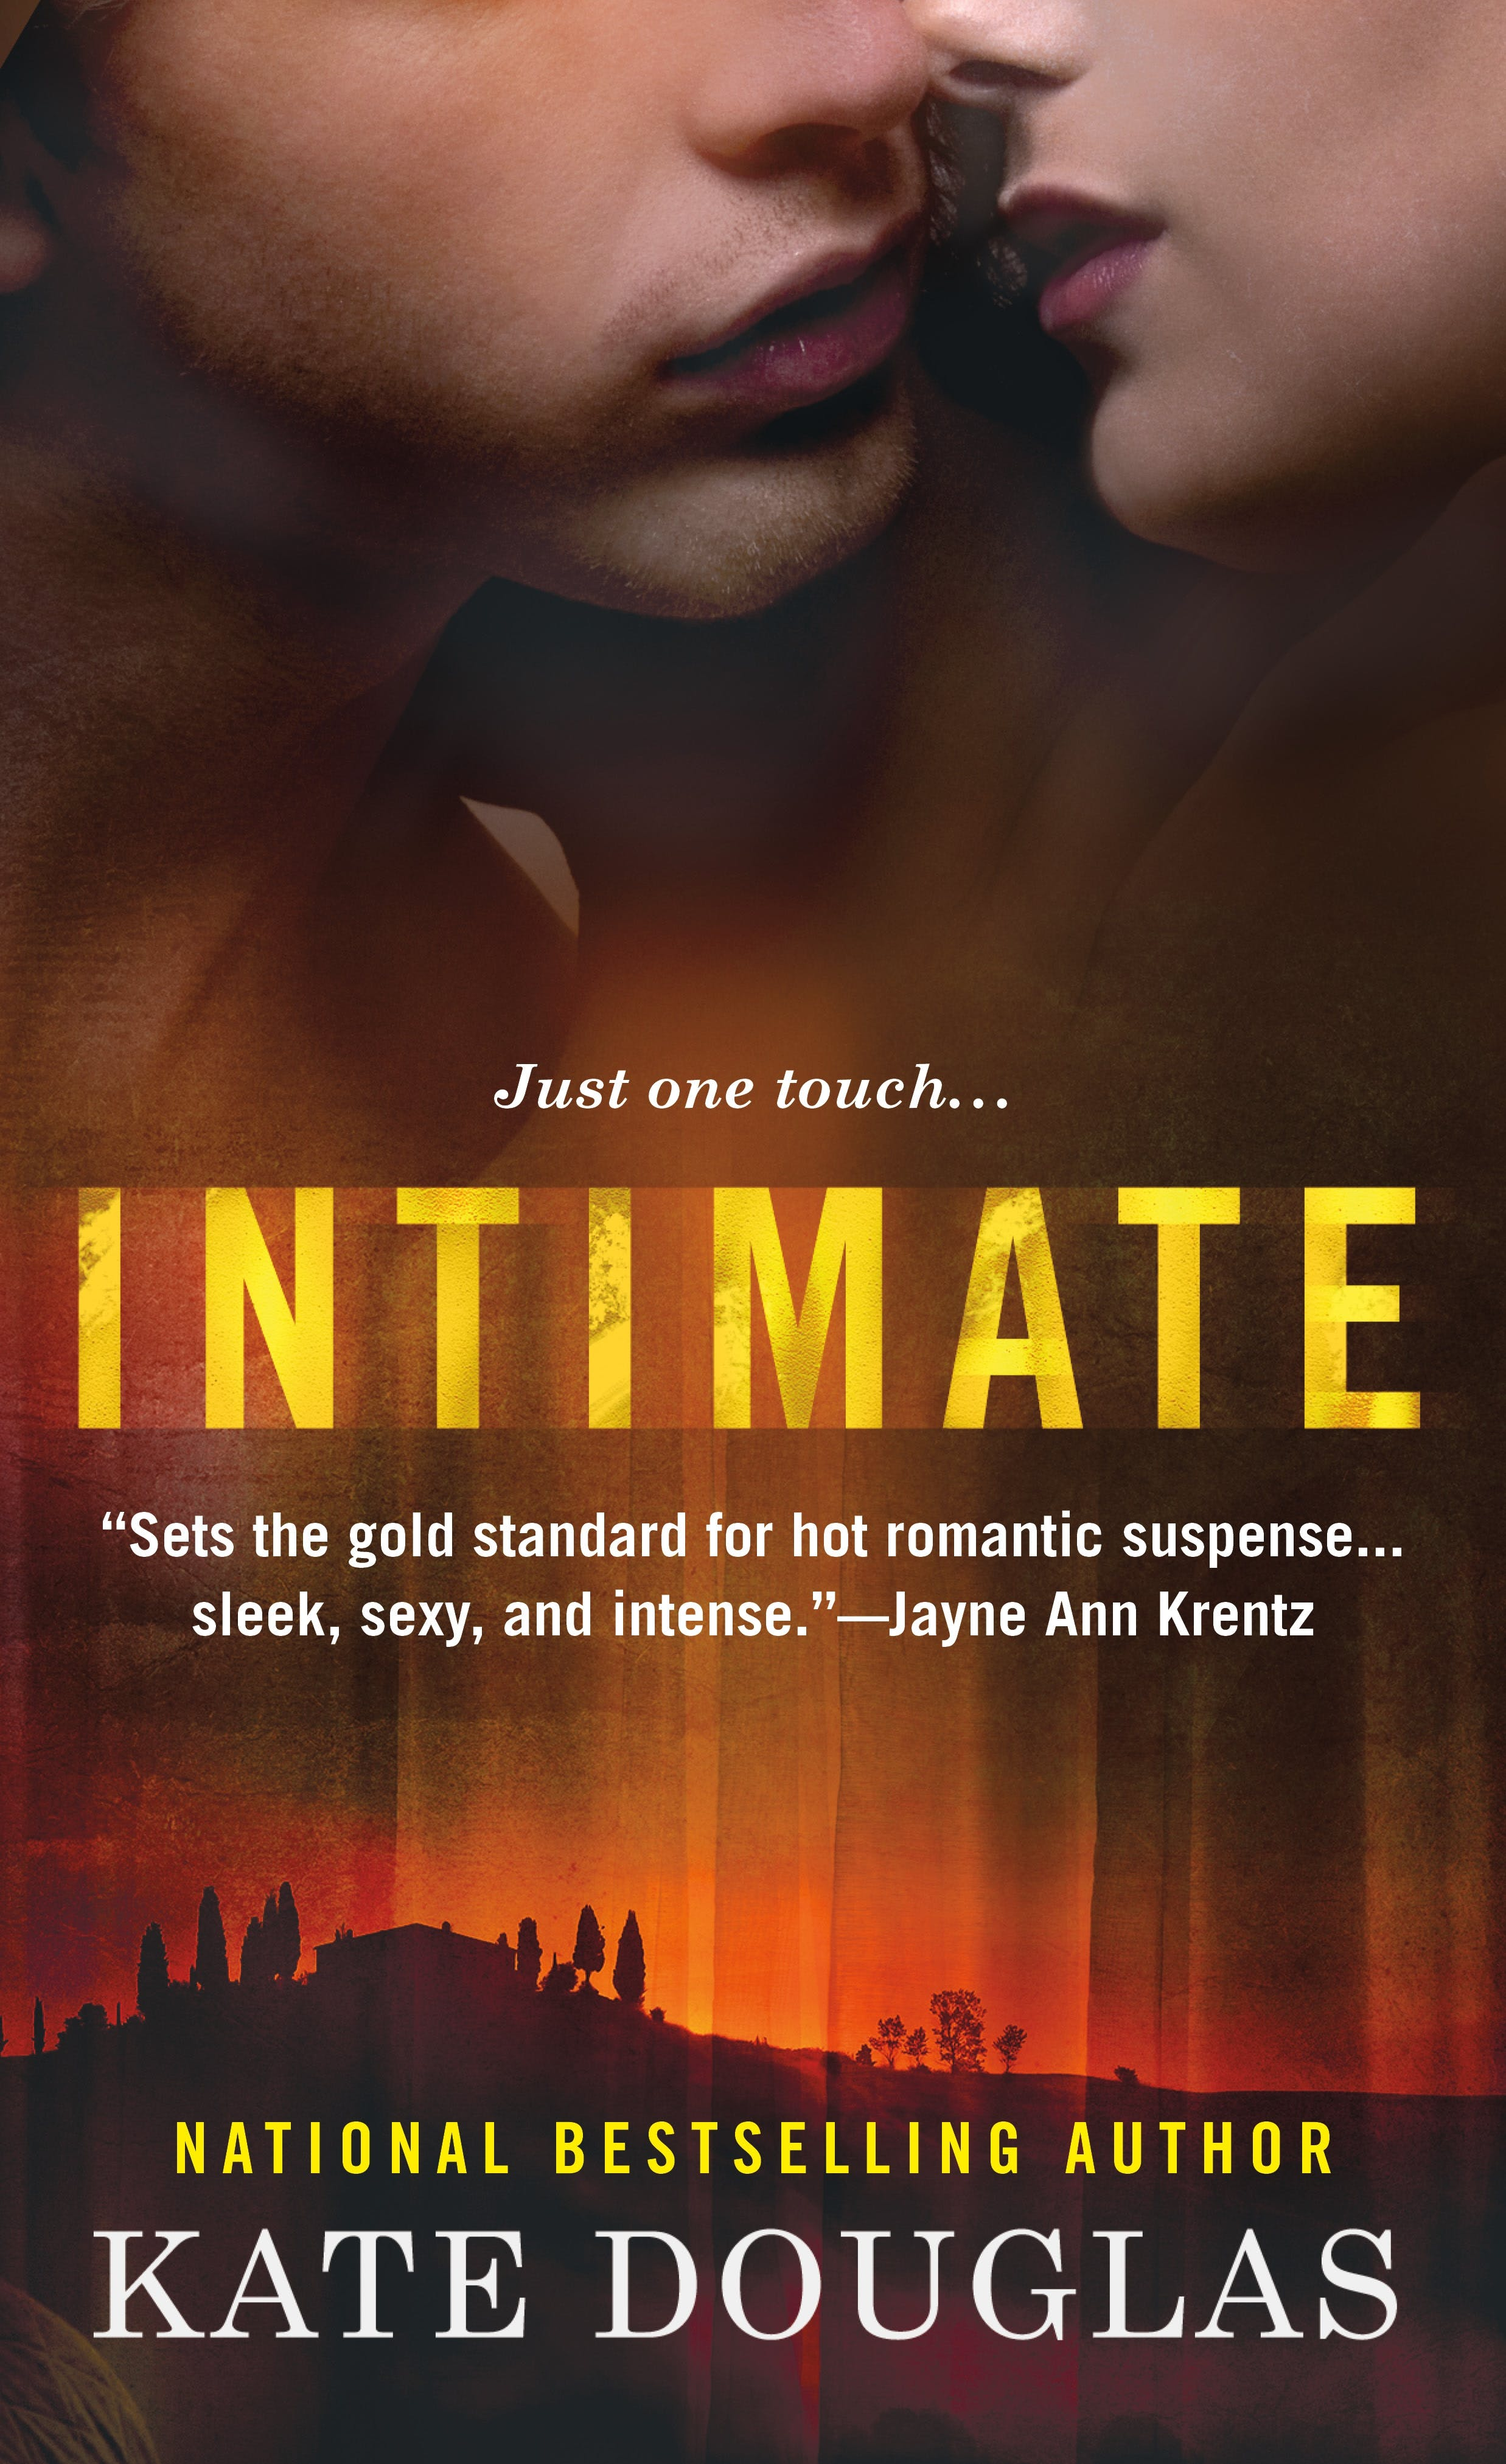 Image of Intimate